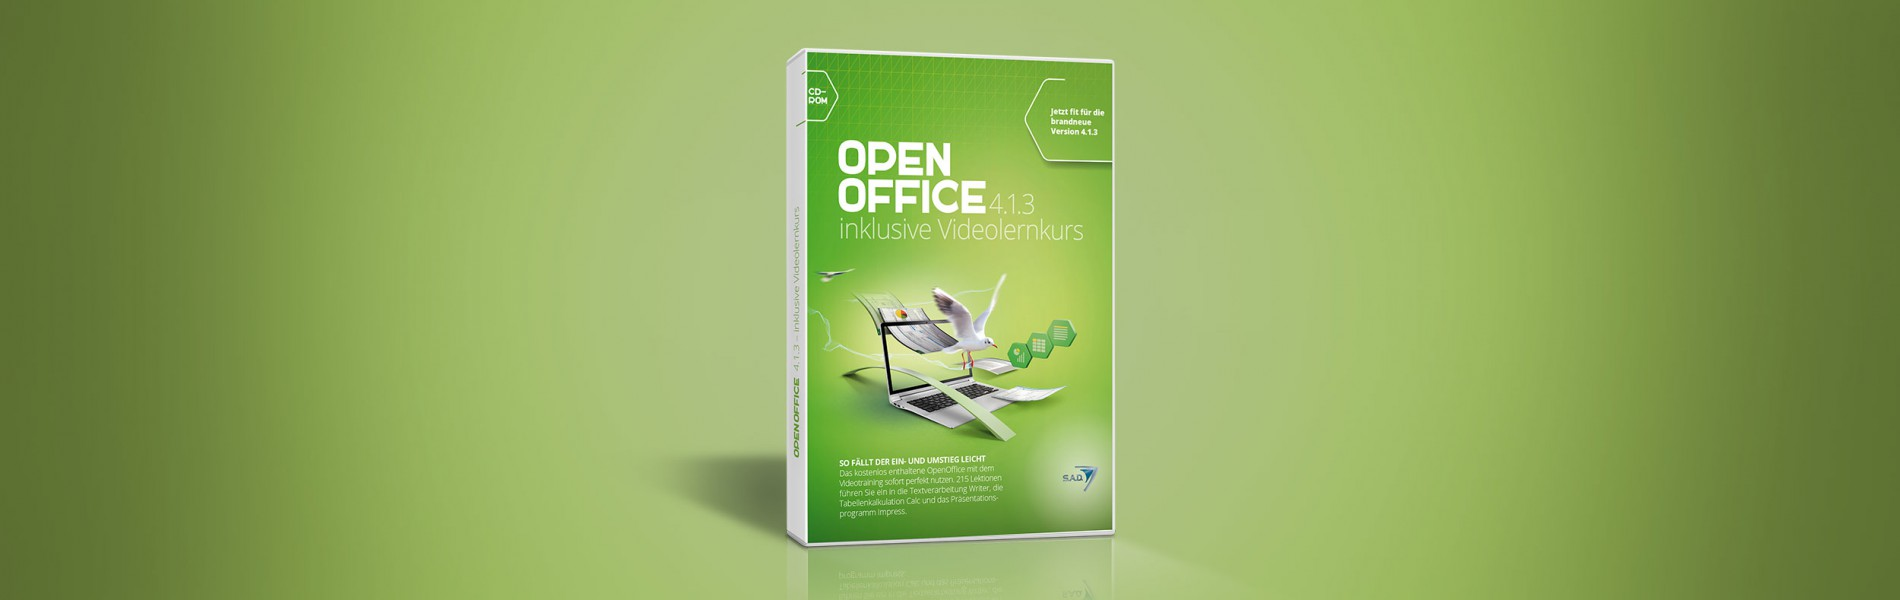 Open Office 4.1.3 inklusive Videolernkurs